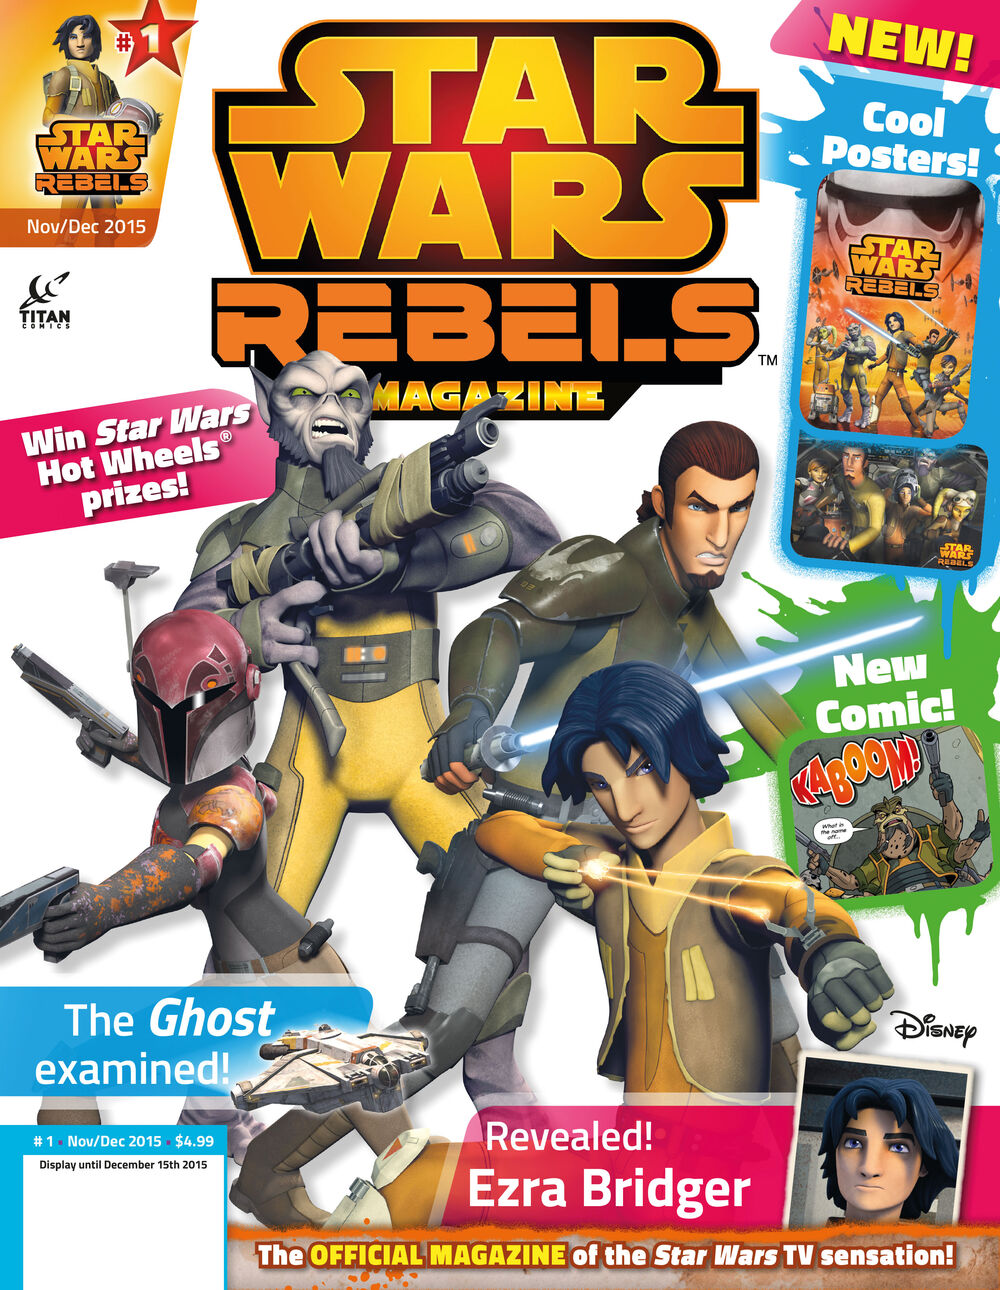 Star Wars Rebels Magazine 1 (US)